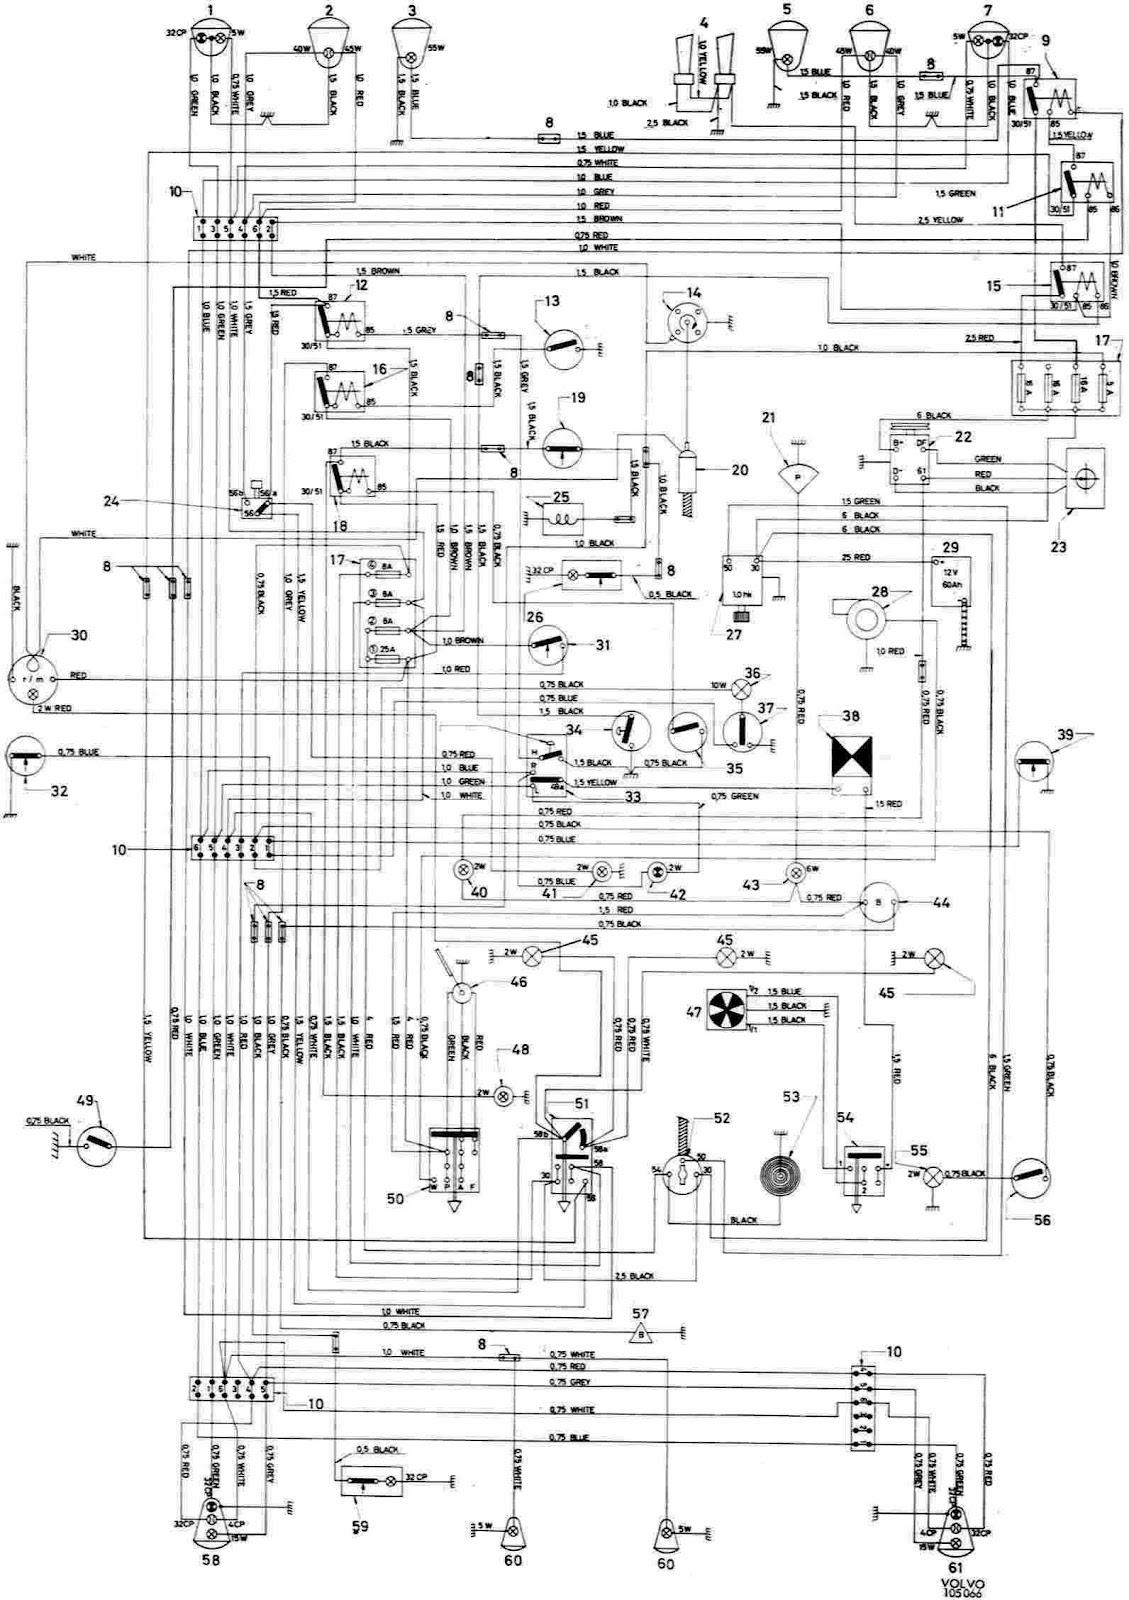 Volvo+123+GT+Complete+Wiring+Diagram hu 613 wiring diagram boat wiring diagram \u2022 wiring diagrams j 1998 volvo v70 radio wiring diagram at webbmarketing.co